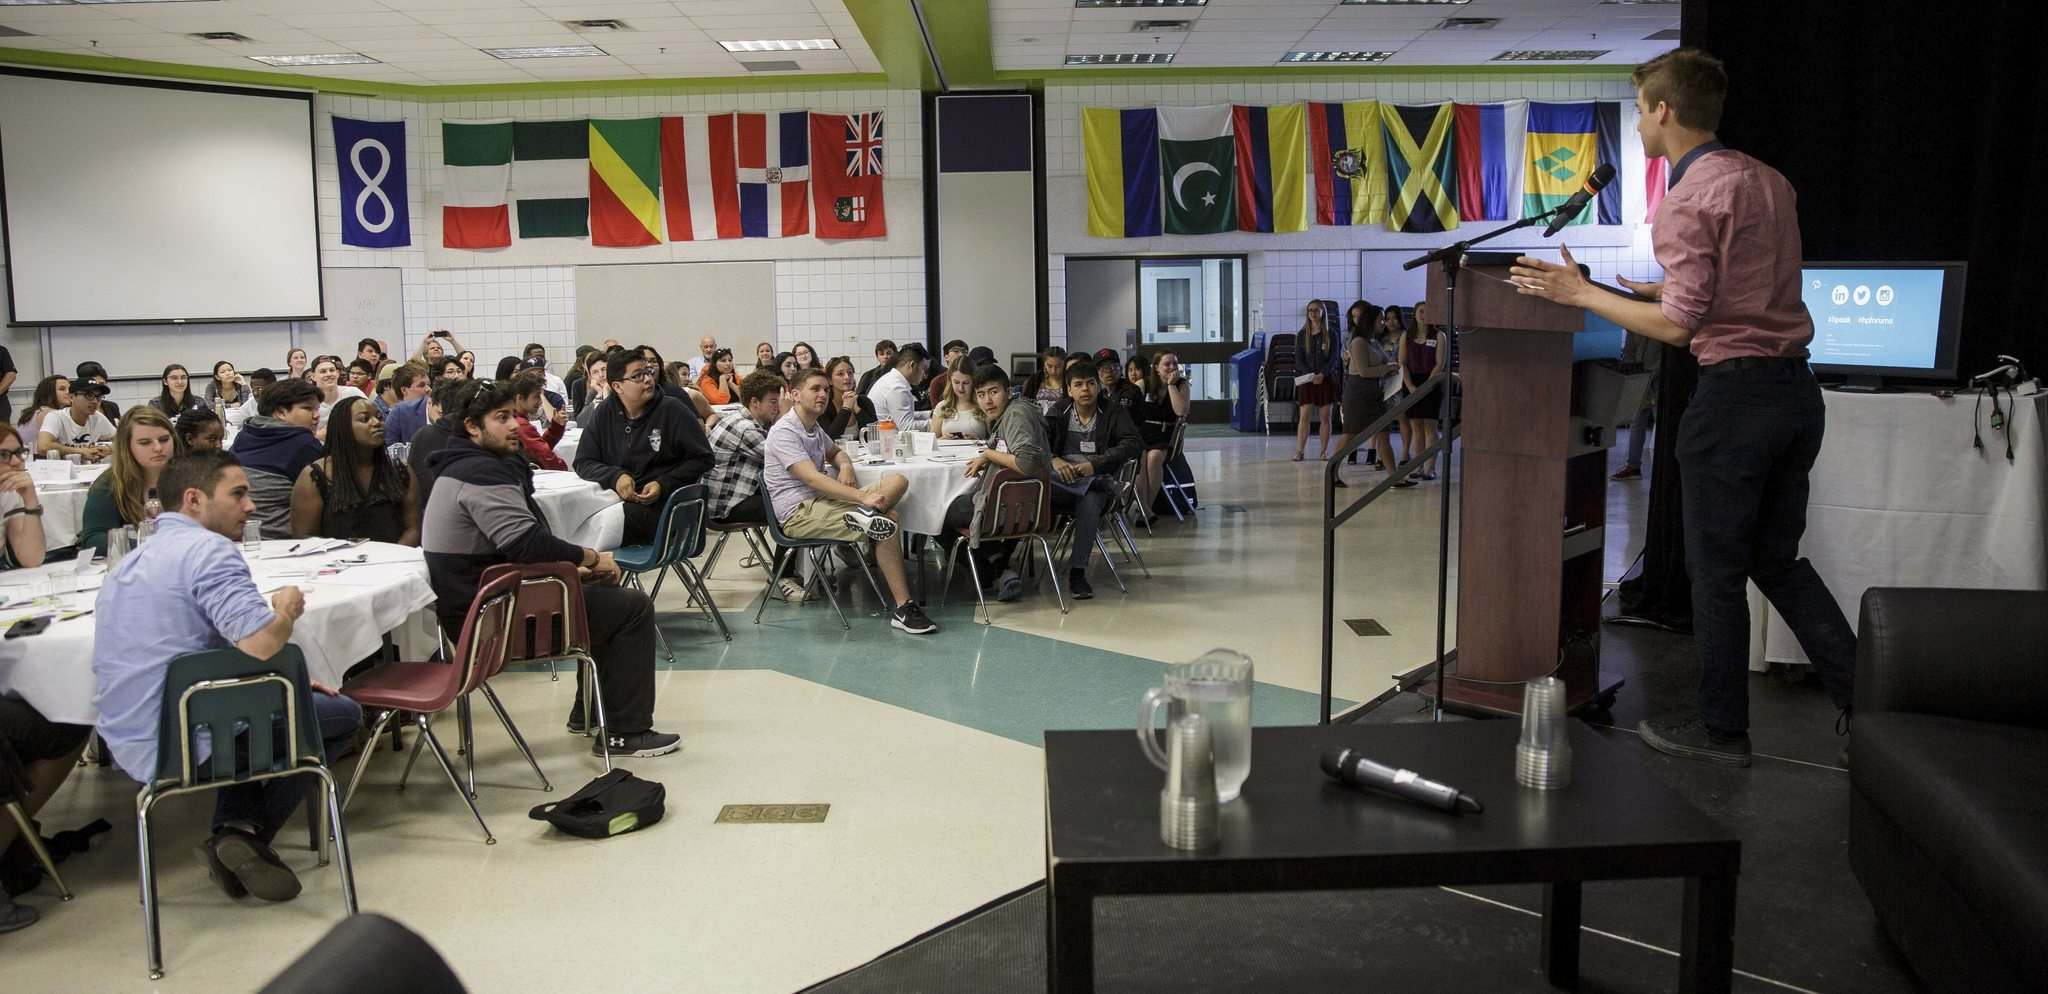 MIKE DEAL / WINNIPEG FREE PRESS</p><p>About 100 students pitched their ideas to local business leaders during the HP Change High School Conference on Wednesday.</p>